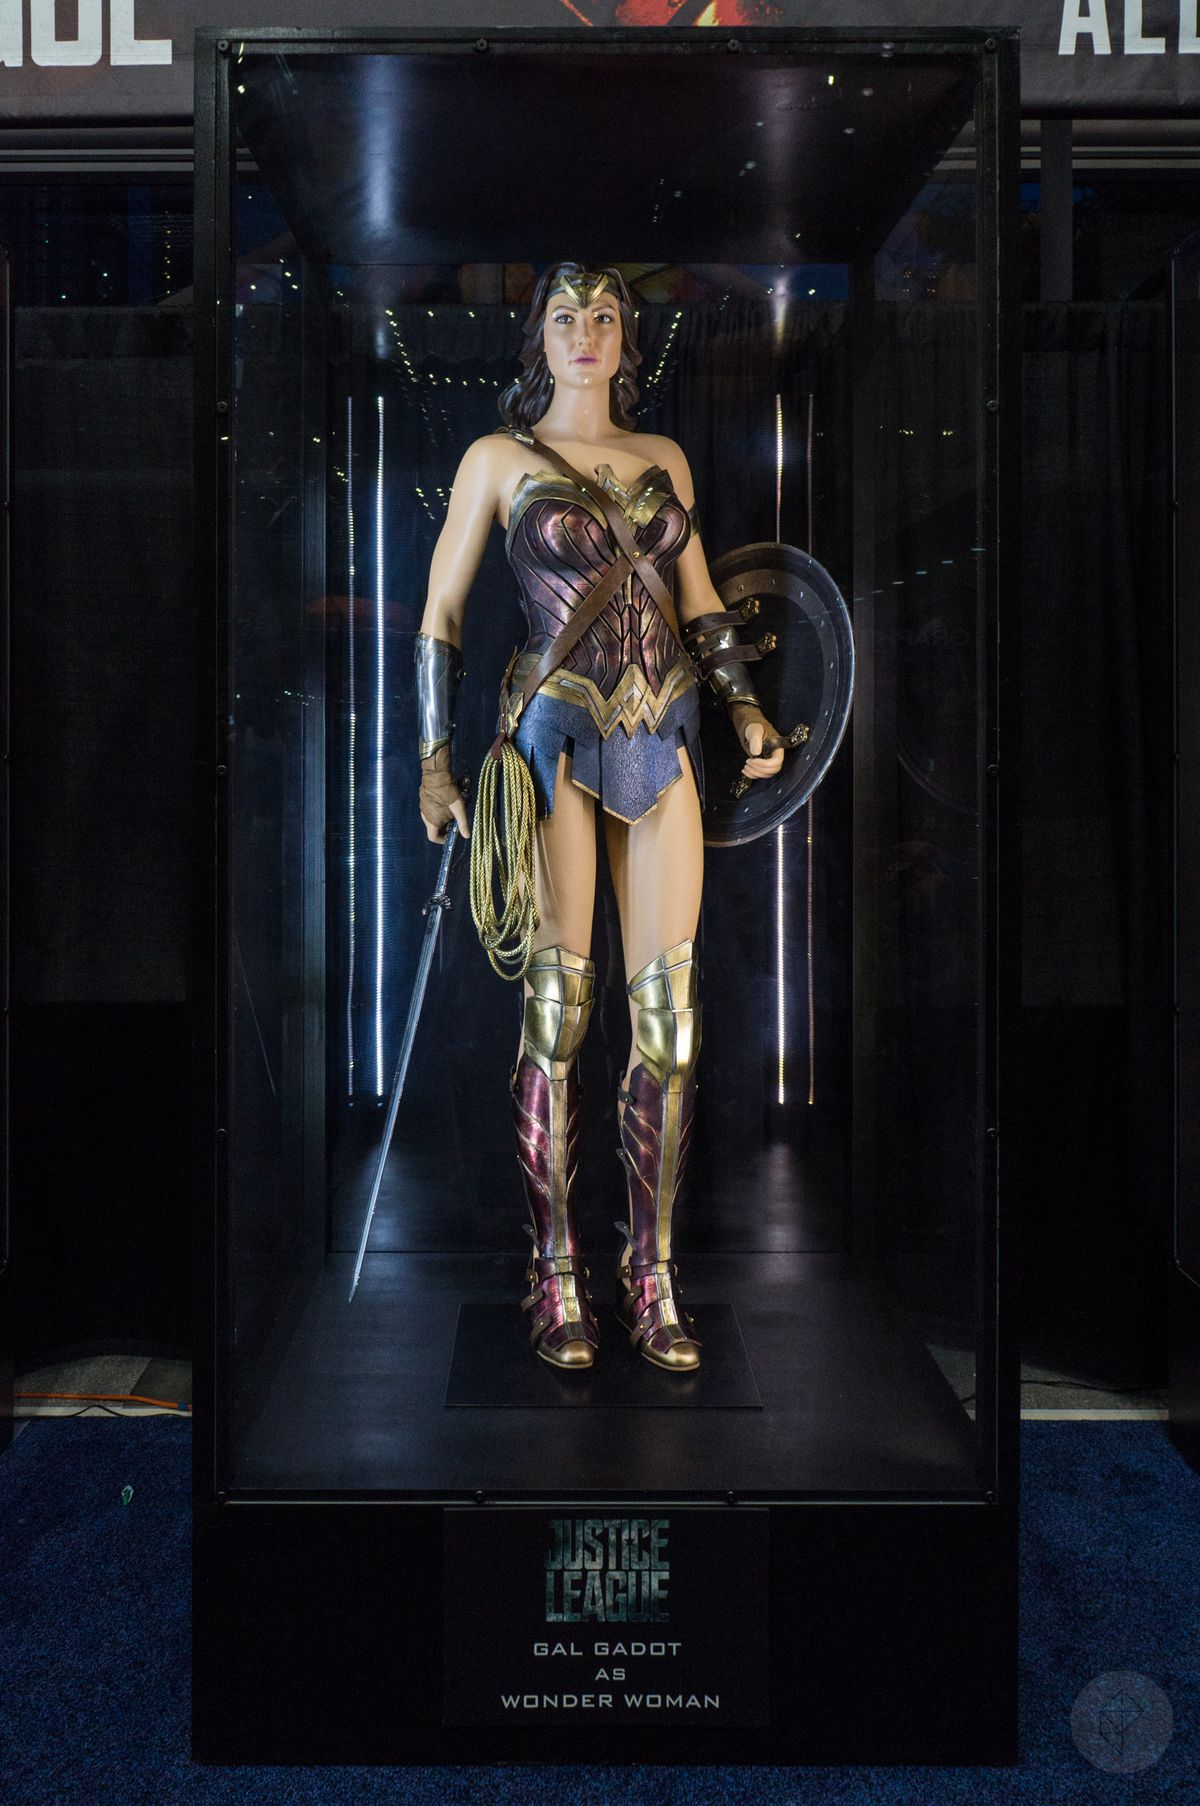 Wonder Woman costume from Justice League movie in glass case at NYCC 2017